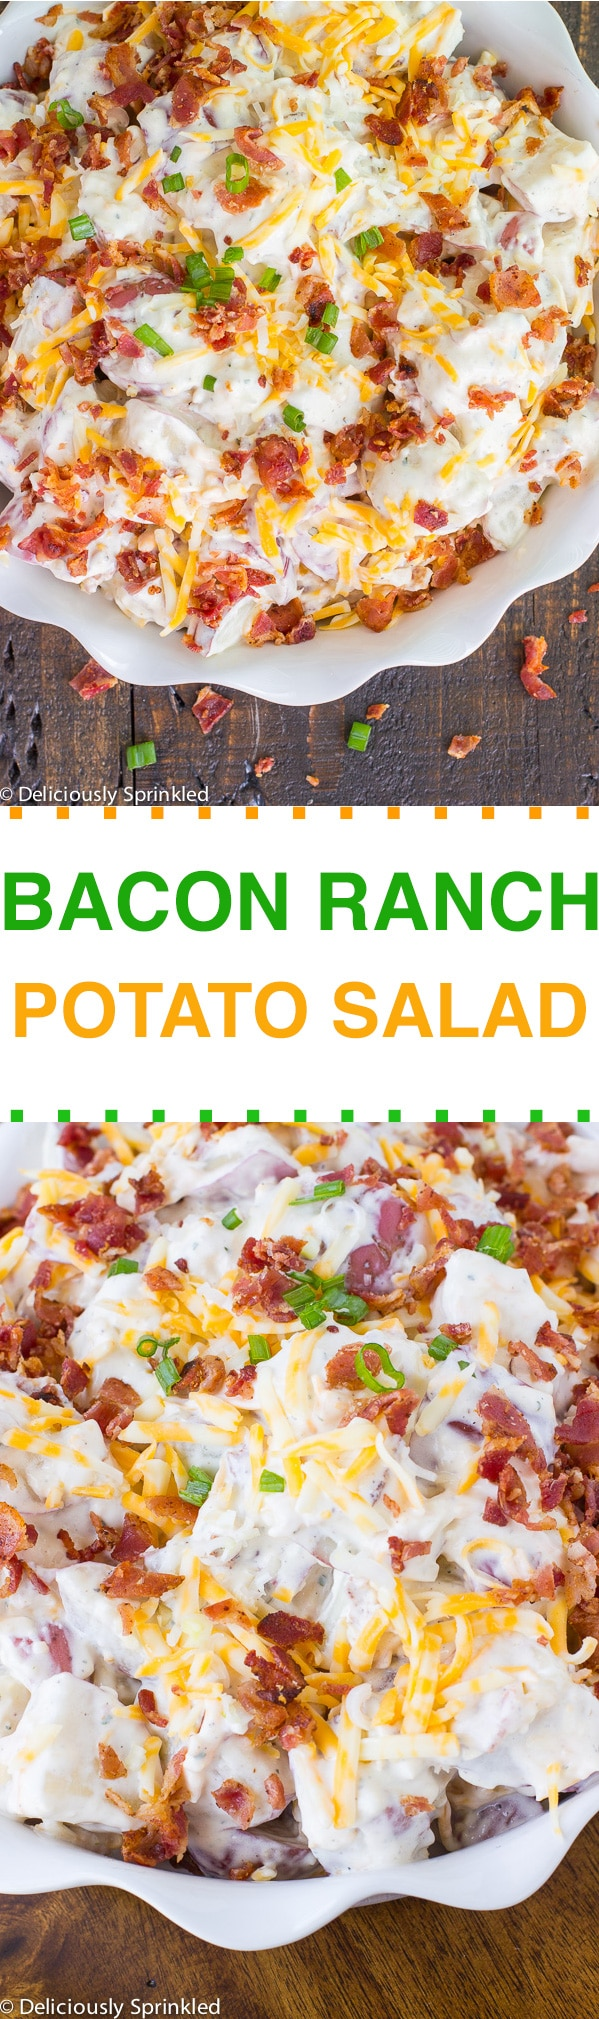 CREAMY BACON RANCH POTATO SALAD | Deliciously Sprinkled